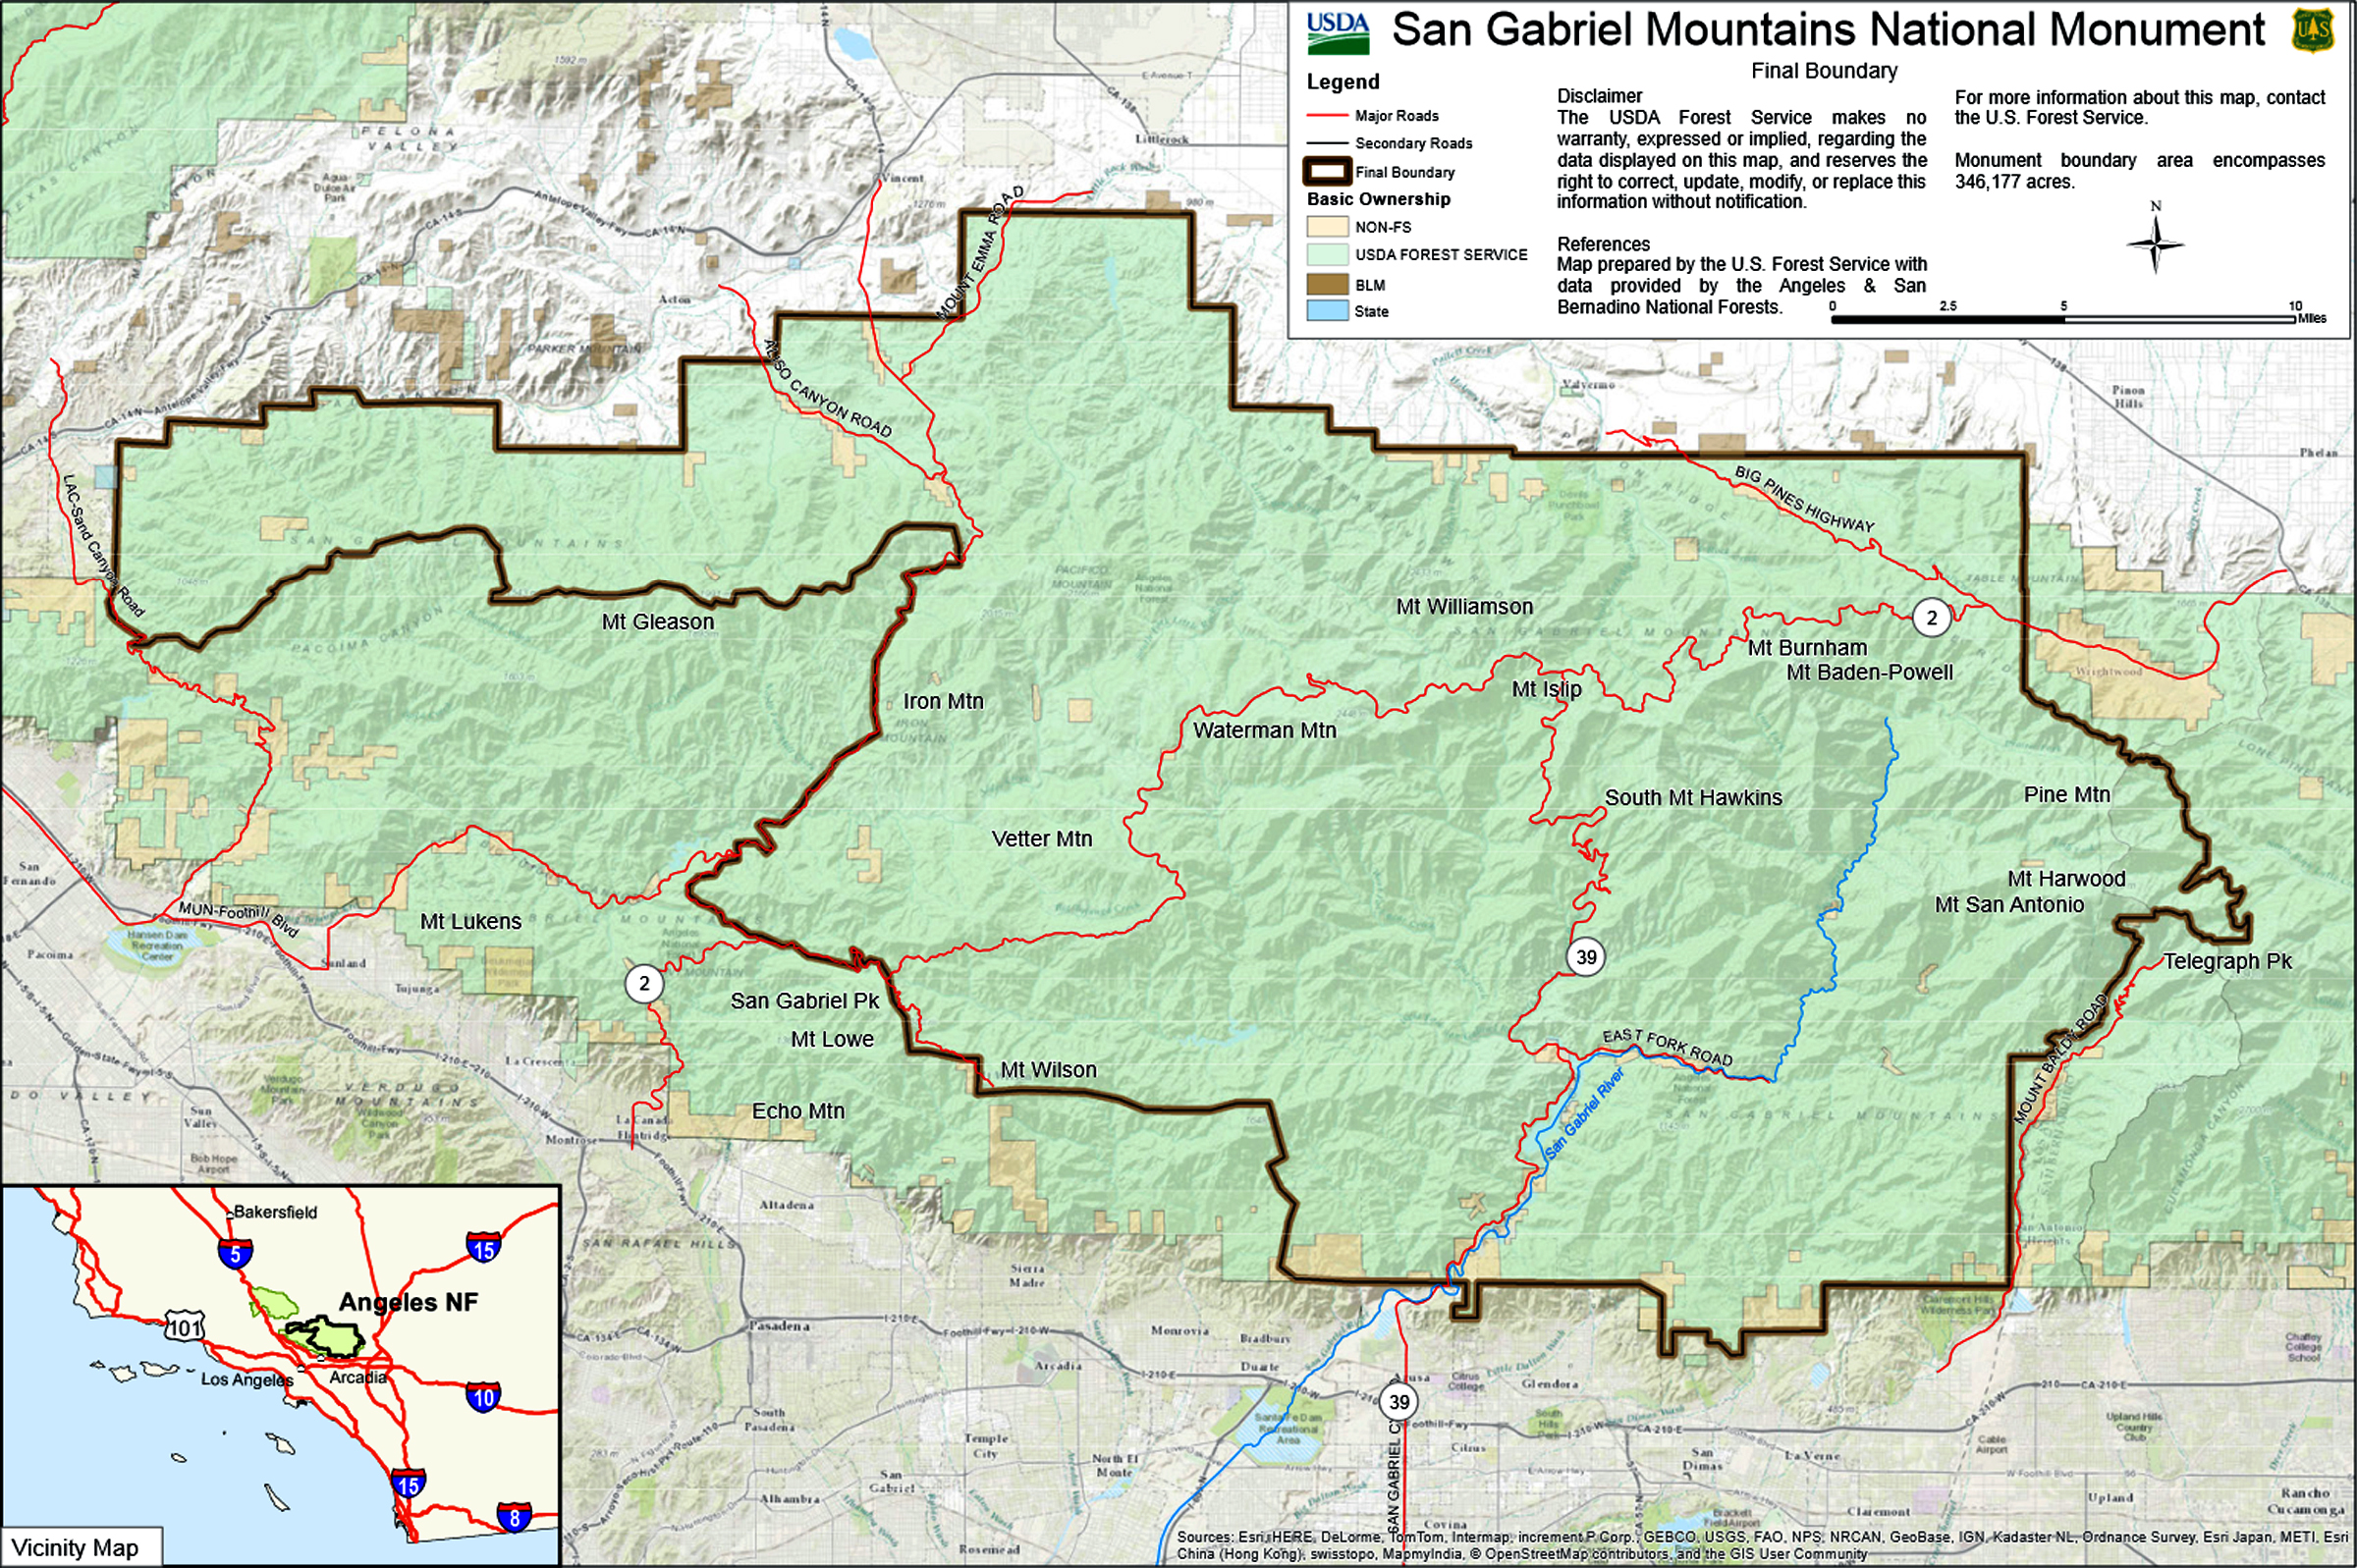 Azusa Canyon Fire Map.Scvhistory Com San Gabriels Map Of San Gabriel Mountains